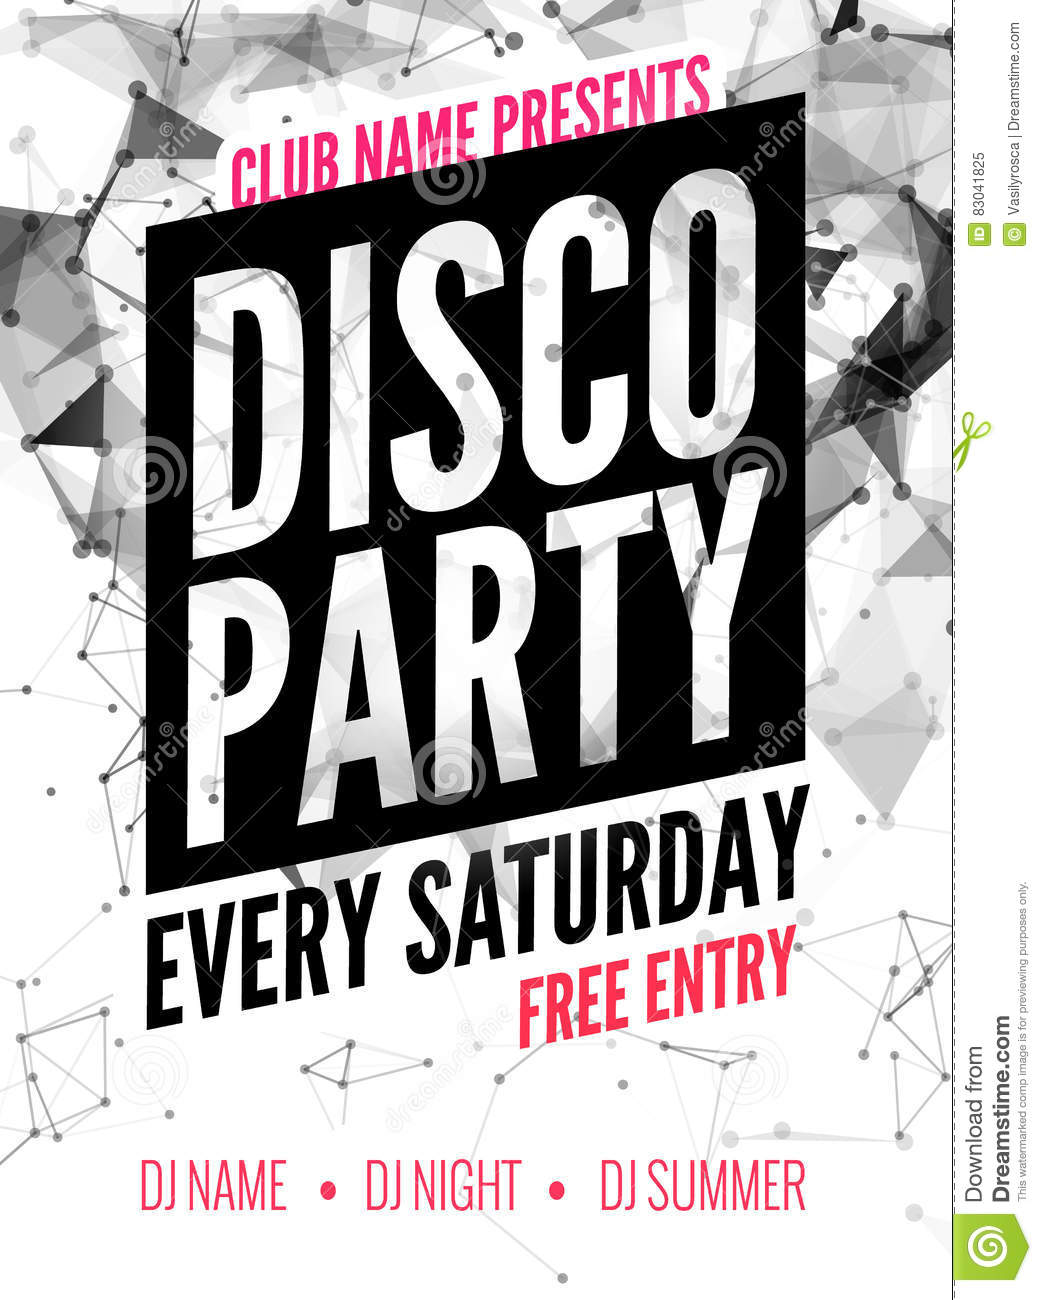 Dj party poster templates free - cafenews.info